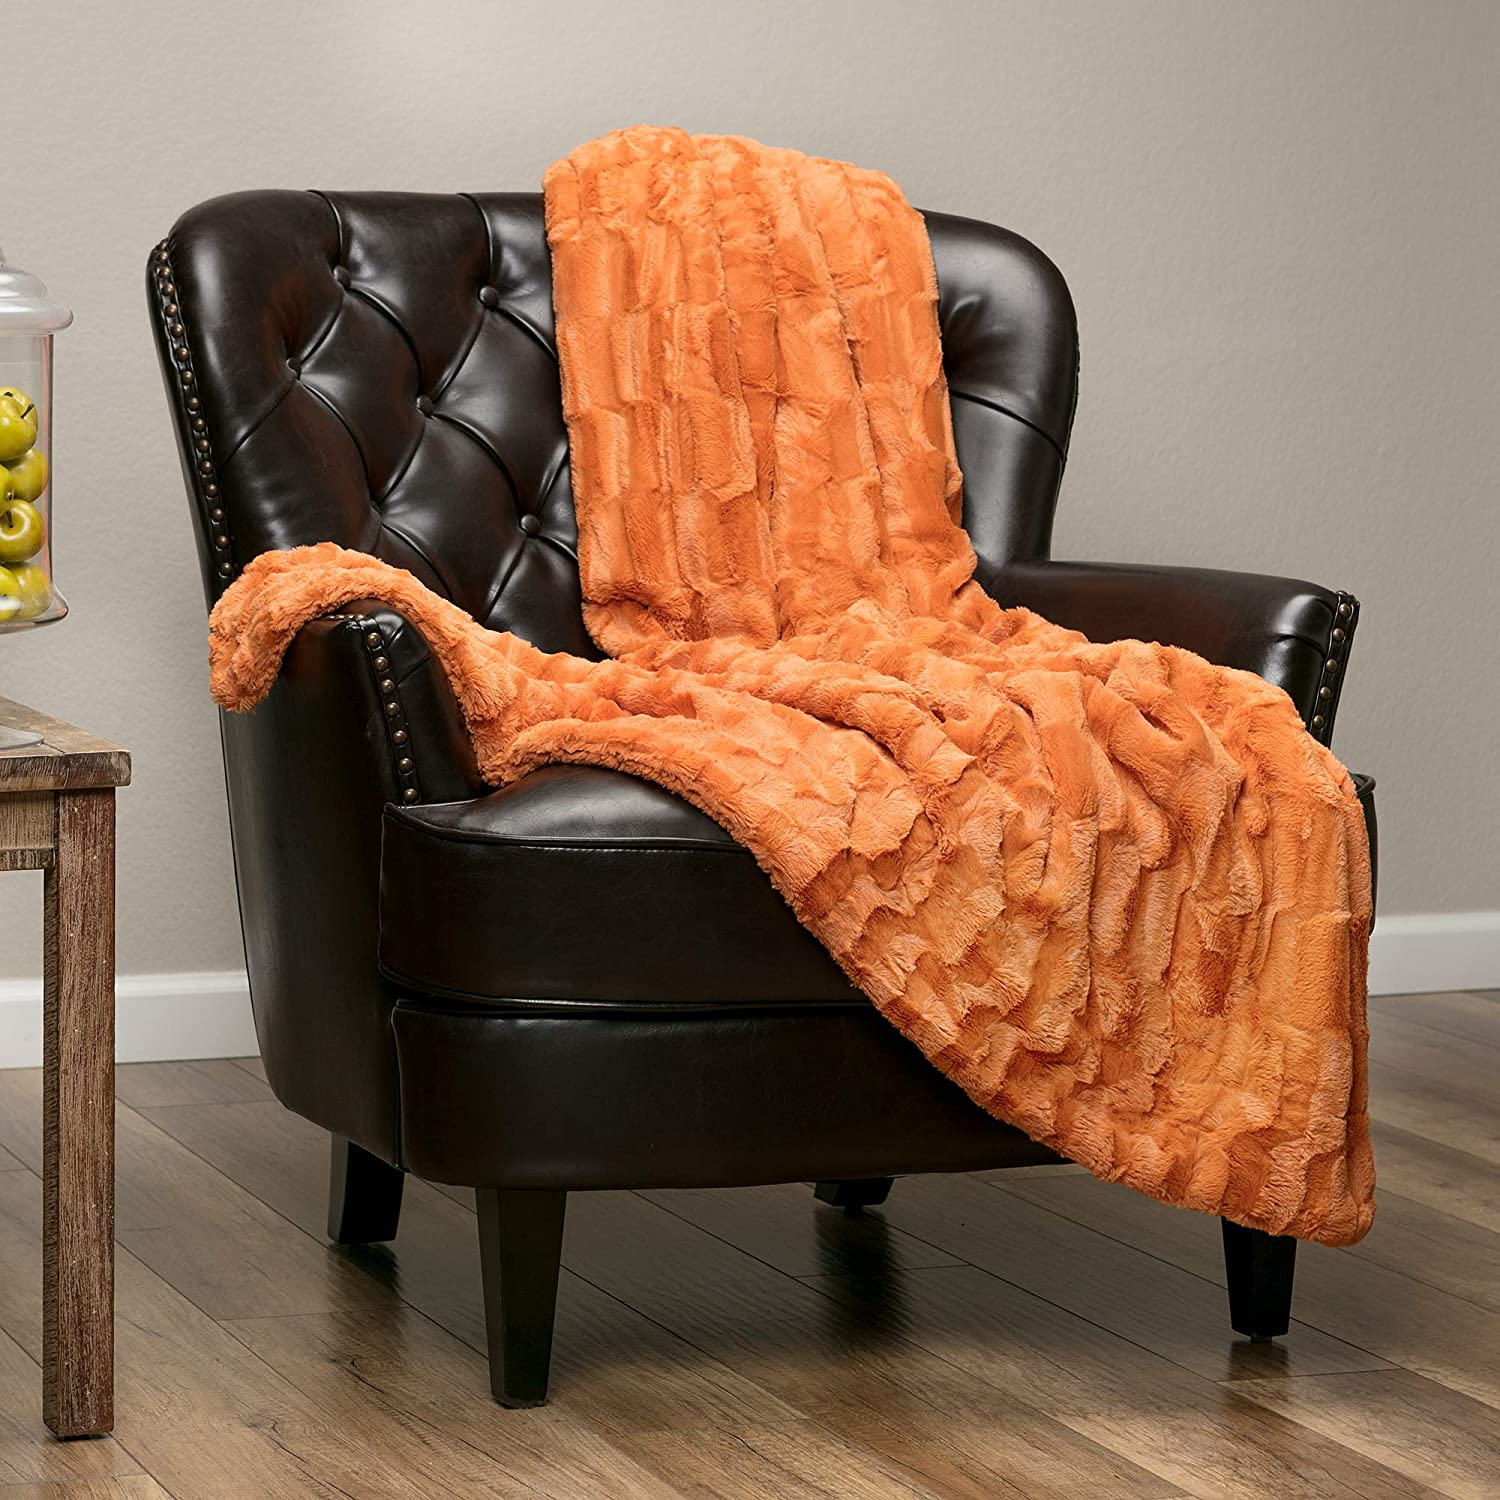 "Chanasya Super Soft Fuzzy Faux Fur Elegant Rectangular Embossed Throw Blanket | Fluffy Plush Sherpa Cozy Pumpkin Microfiber Blanket for Bed Couch Living Room Fall Winter Spring (50"" x 65"") - Orange"